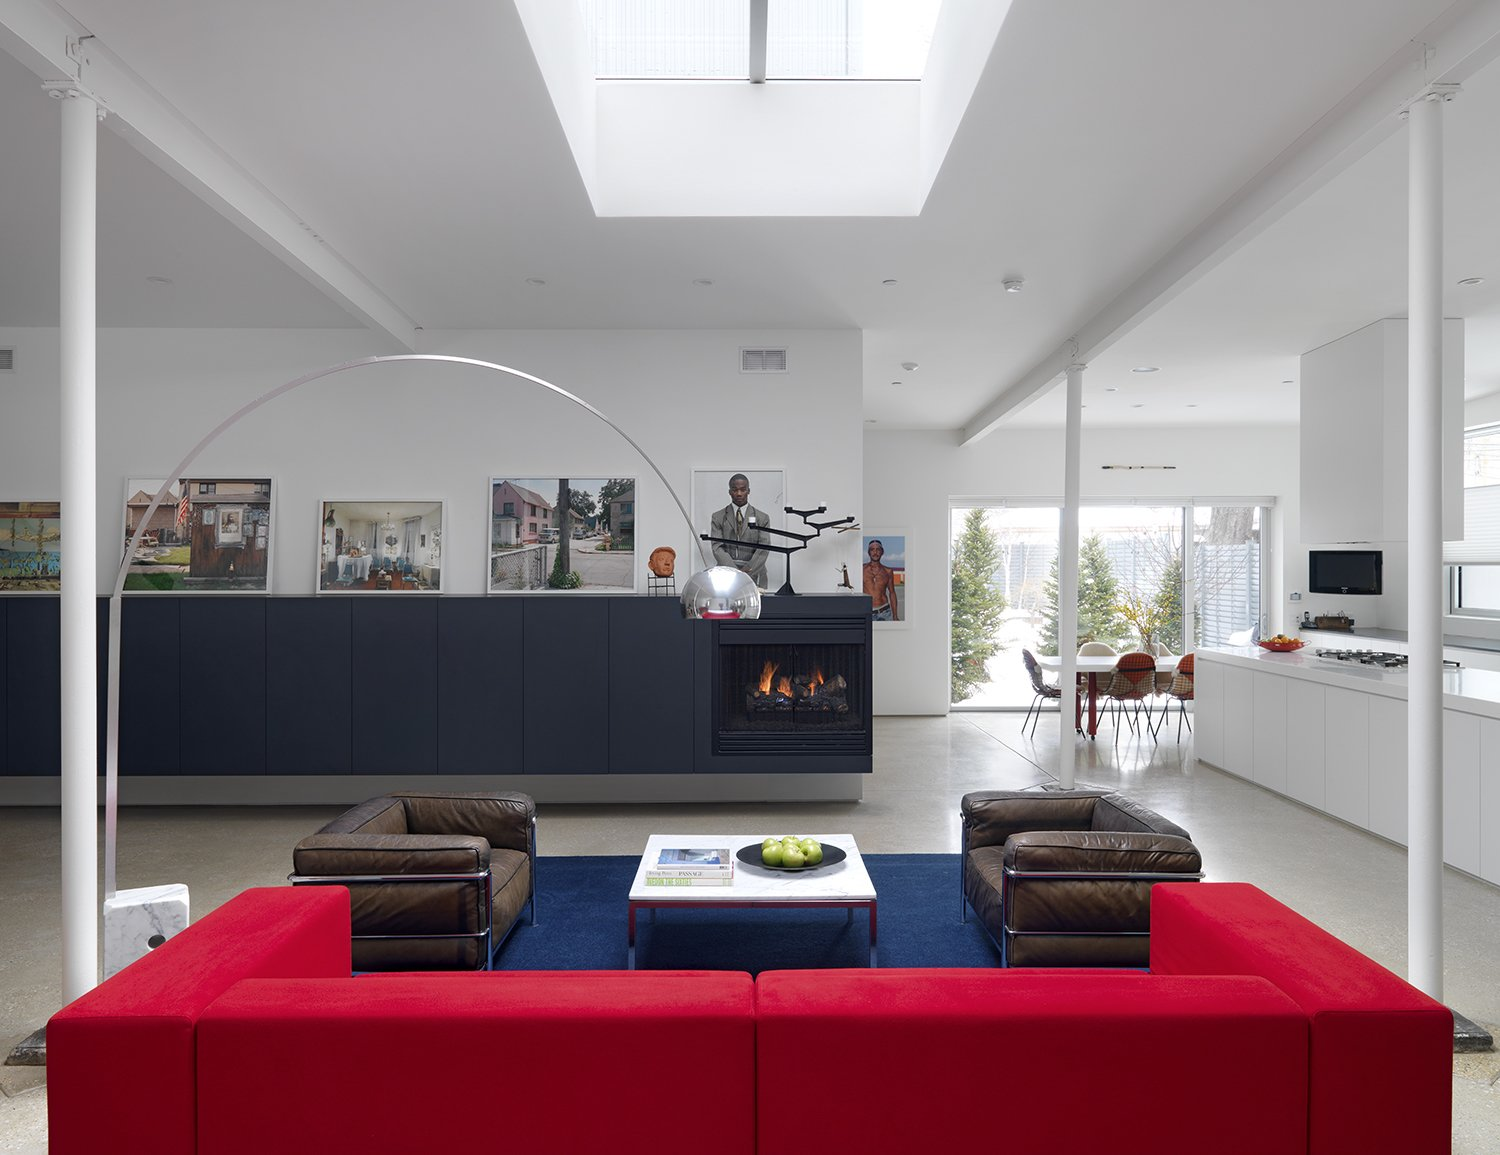 A new skylight regulates the living room's natural light. Ronan set up great contrasts in the space with the bone white walls and ceiling, black wall unit with built-in fireplace, and the crisply framed courtyard. The owners enhanced the space further with vibrant photography and furnishings. Tagged: Living, Chair, Sofa, Lamps, Recessed, Concrete, Standard Layout, Wood Burning, and Floor.  Best Living Wood Burning Recessed Photos from Ravenswood Residence